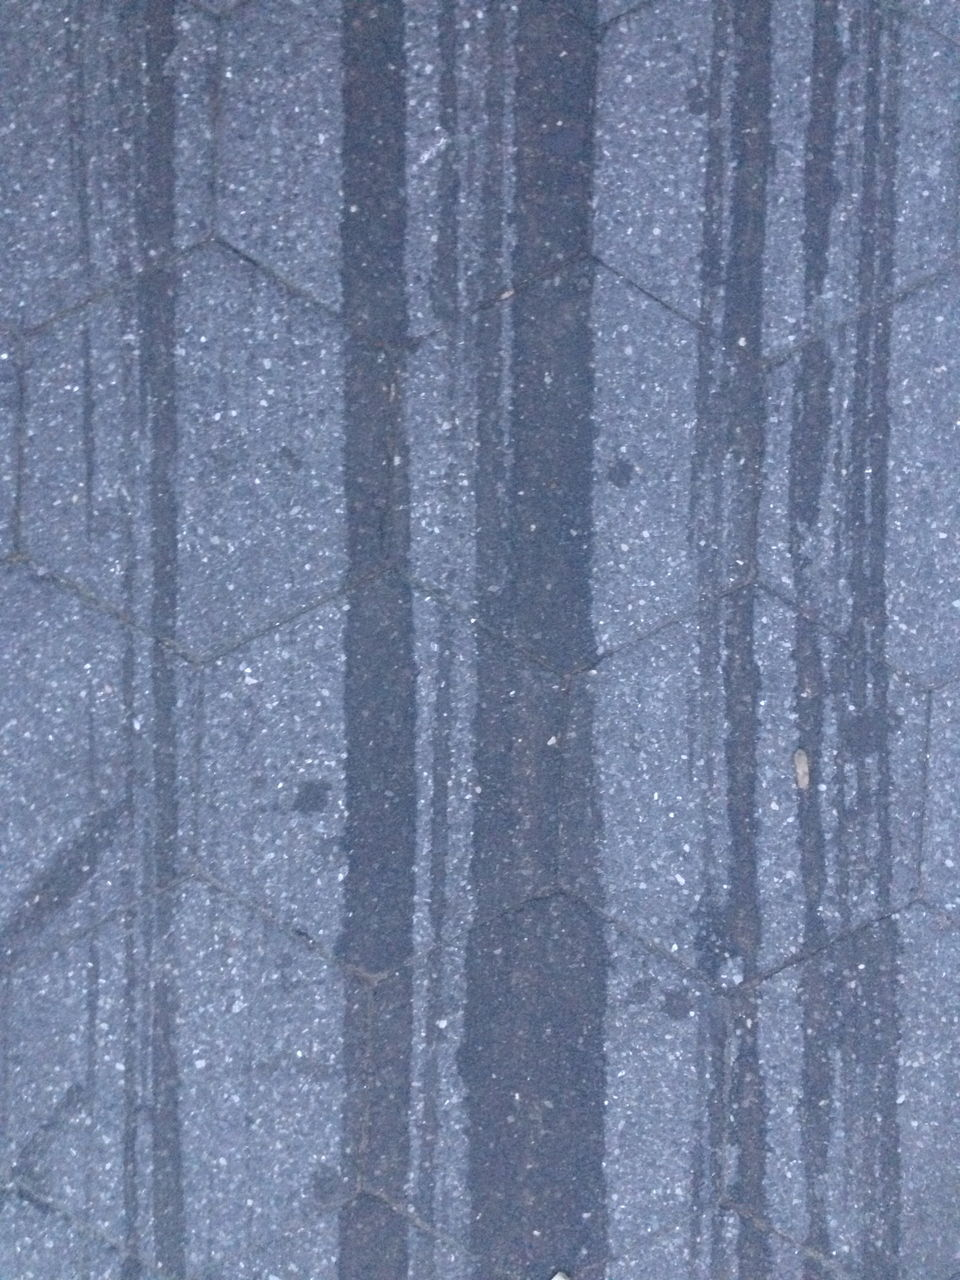 gray, backgrounds, textured, no people, full frame, day, outdoors, close-up